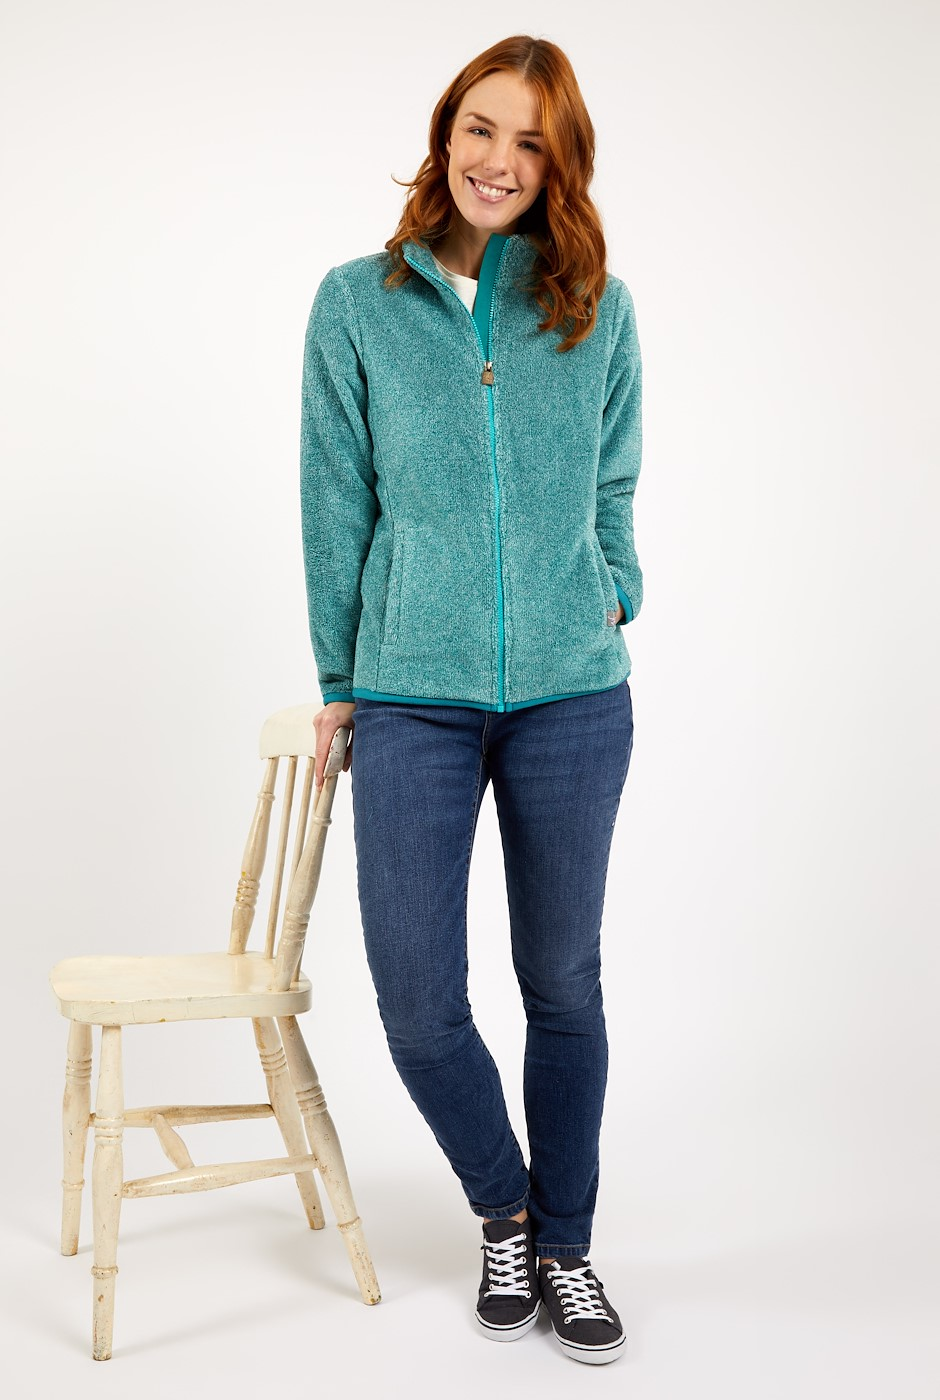 Hulla Full Zip Melange Coral Fleece Deep Teal